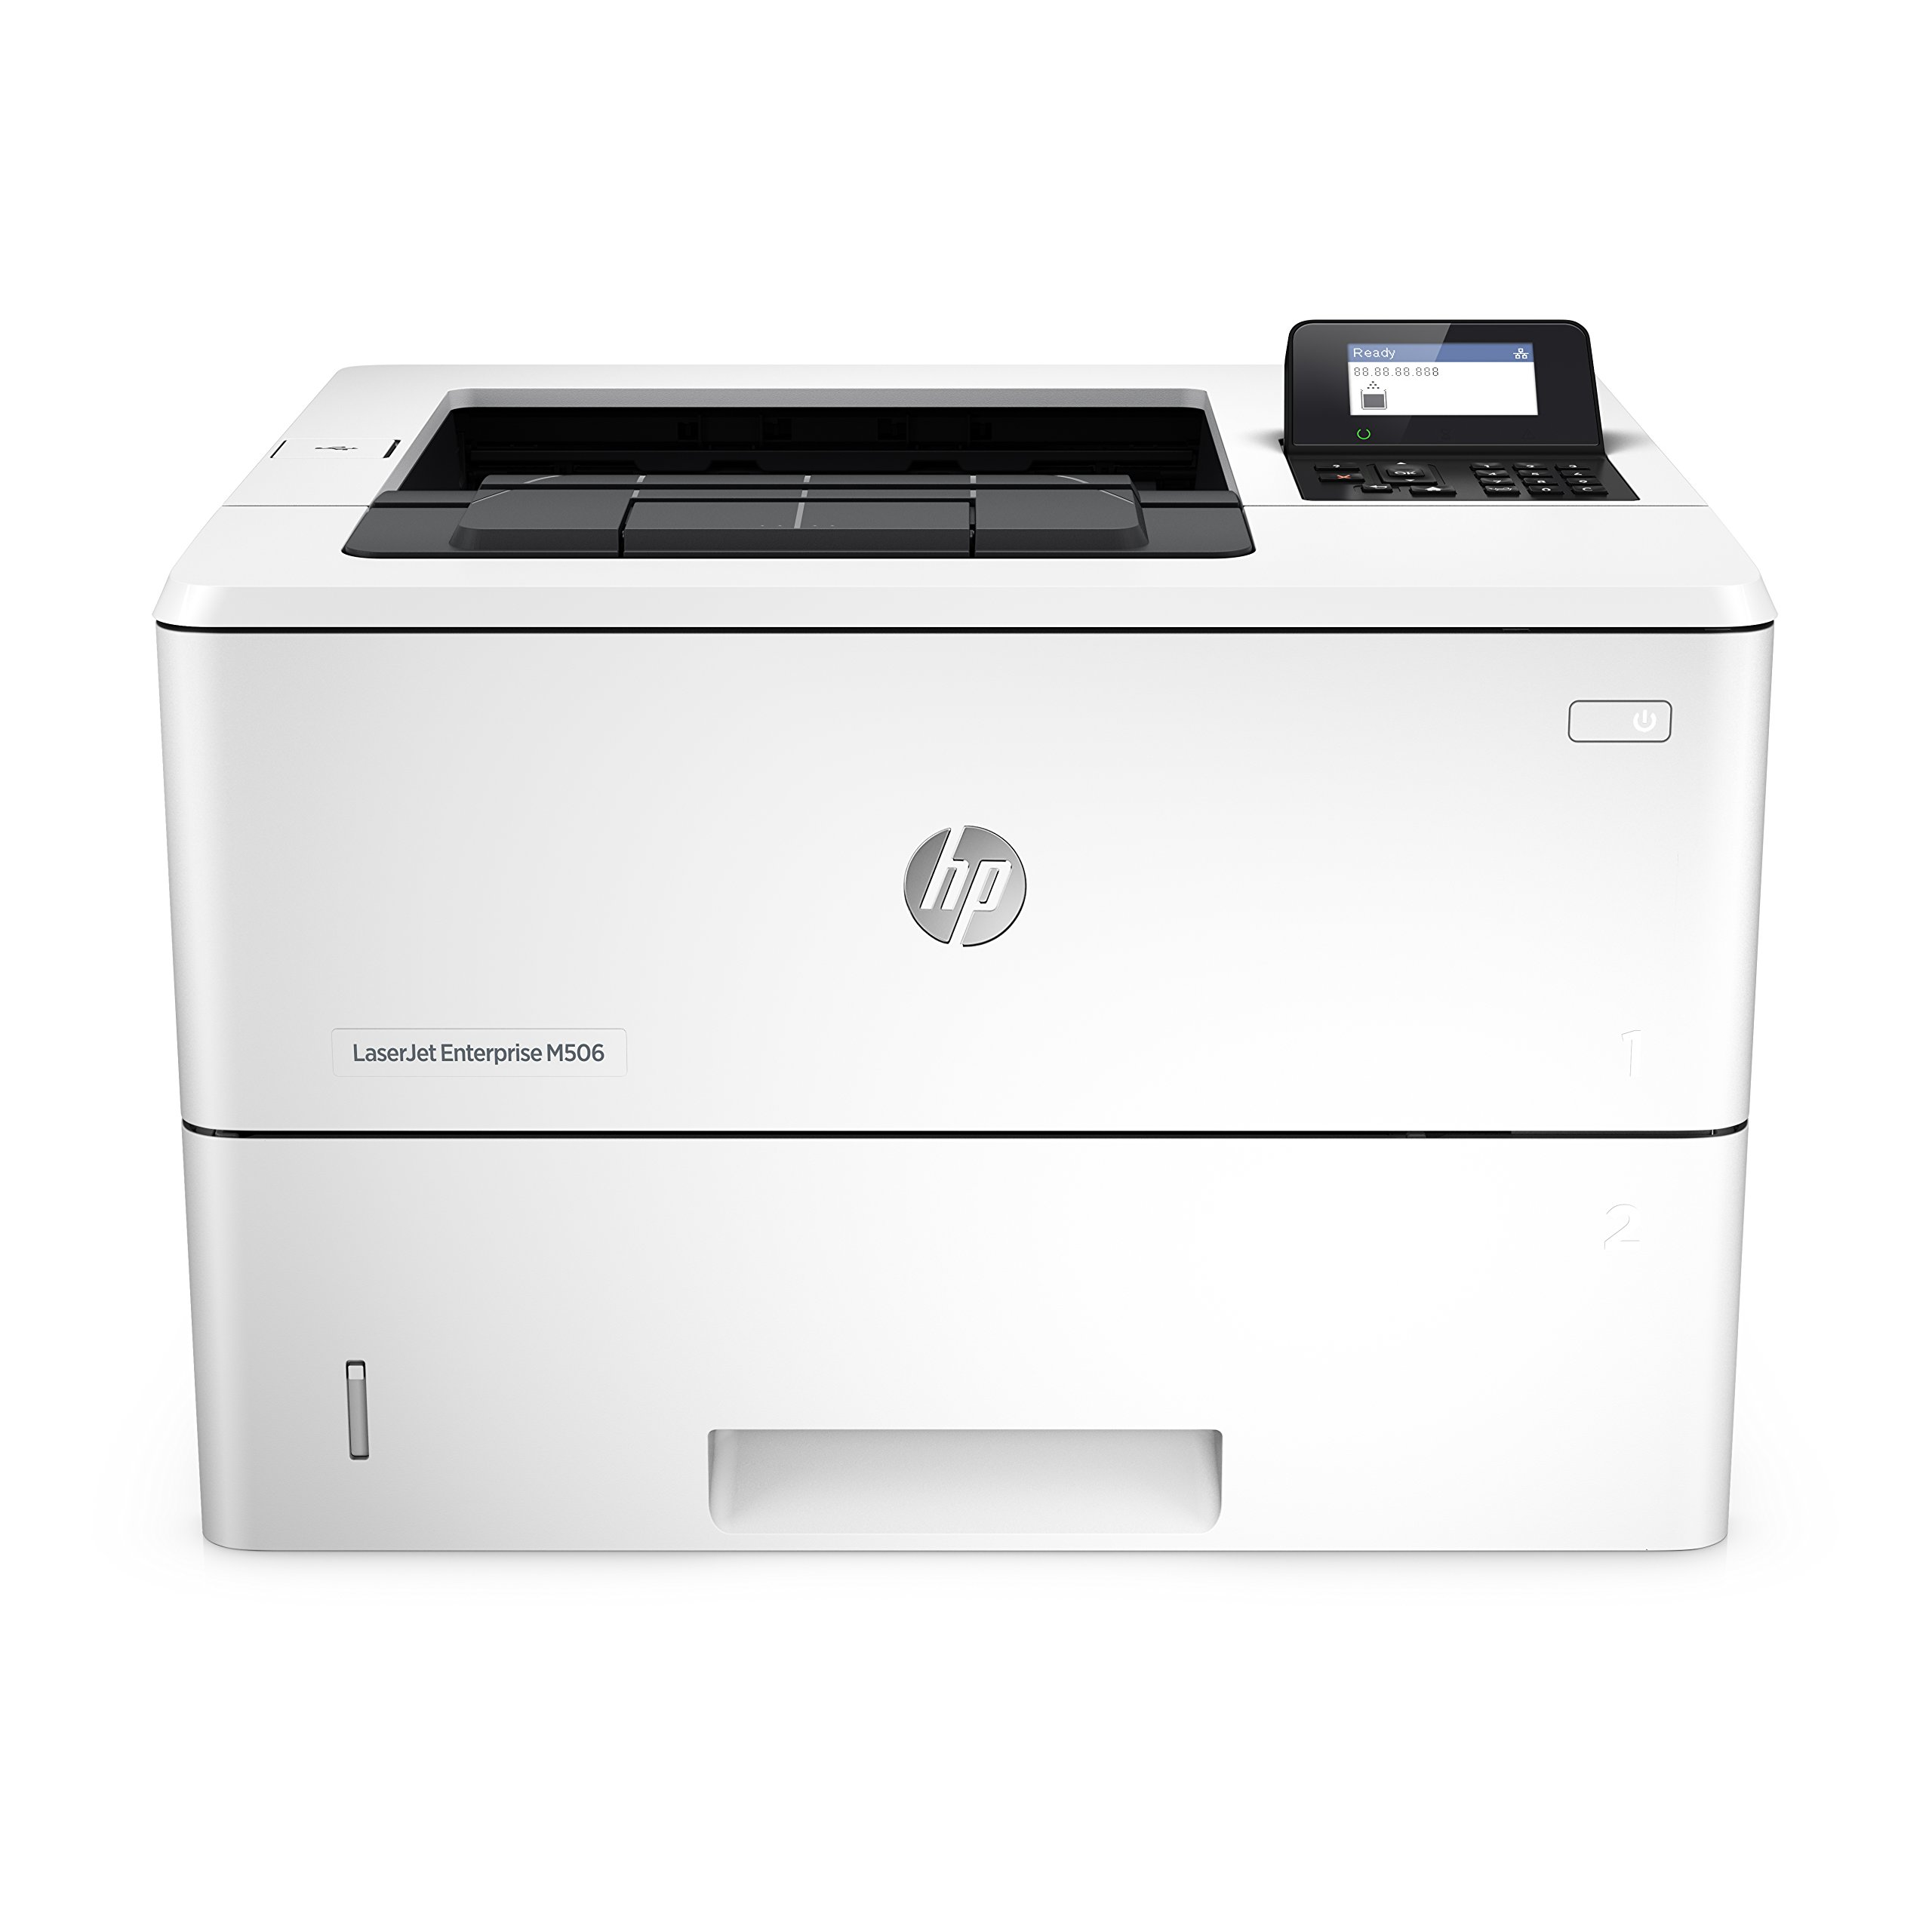 HP LaserJet Enterprise M506n Laser Printer with Built-in Ethernet (F2A68A) by HP